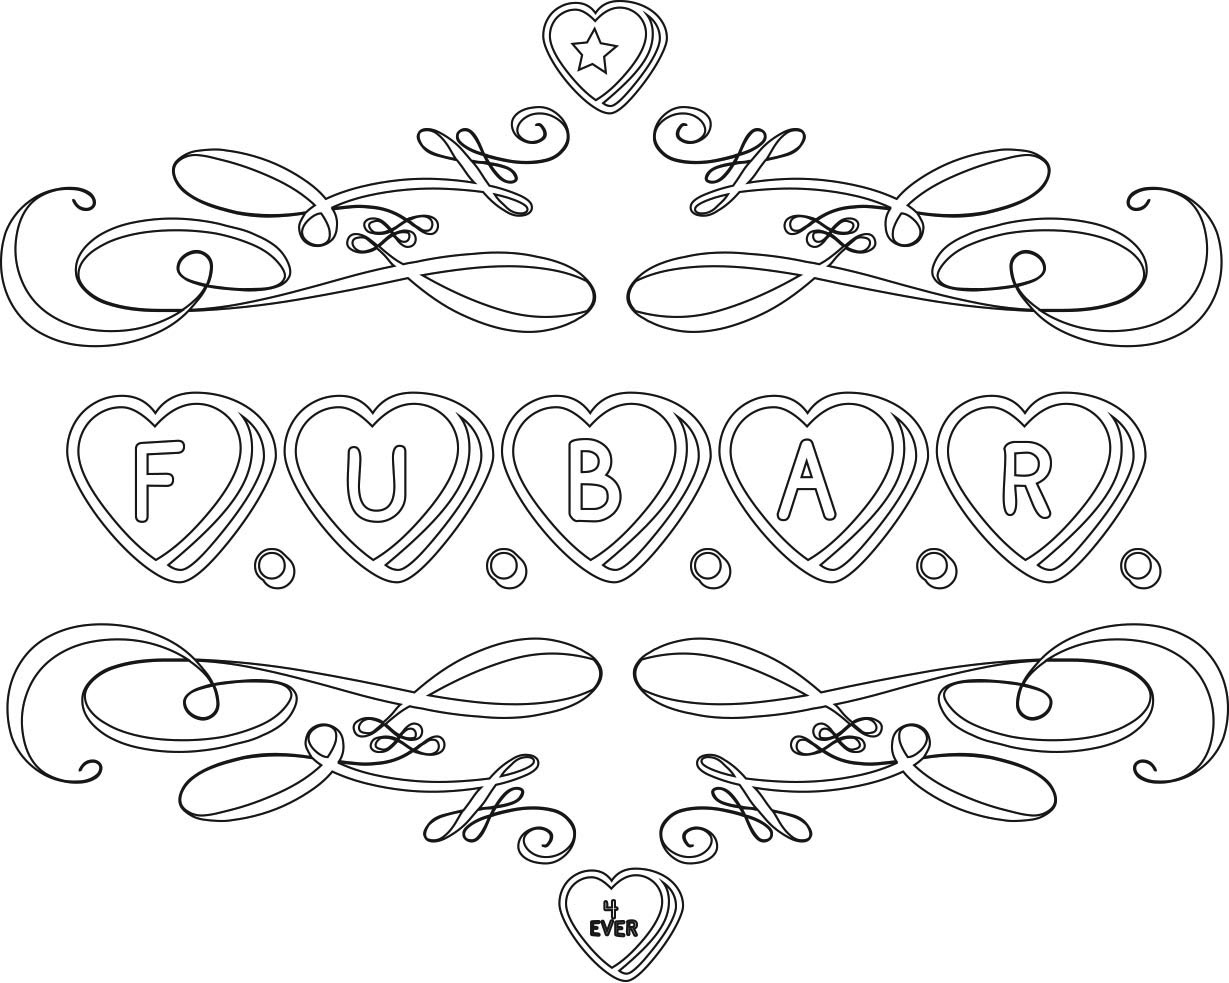 Sweater surgery f u b a r 4 ever conversation hearts for Candy heart coloring pages